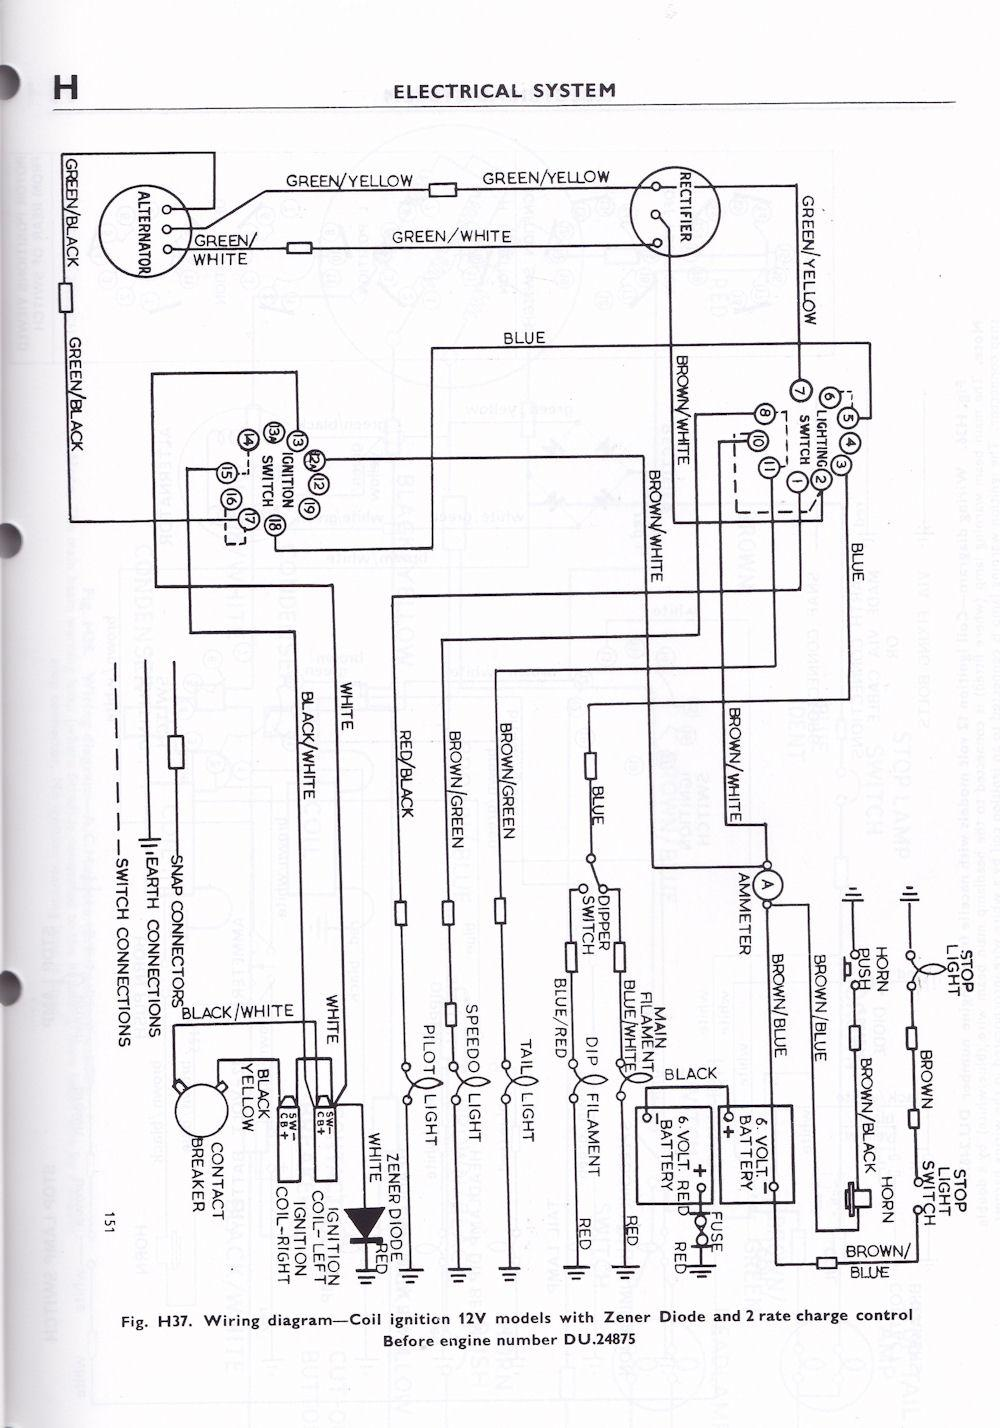 wiring diagram triumph 6t, tr6, t120 1963 70 british only Triumph Boat Ignition Switch Wires